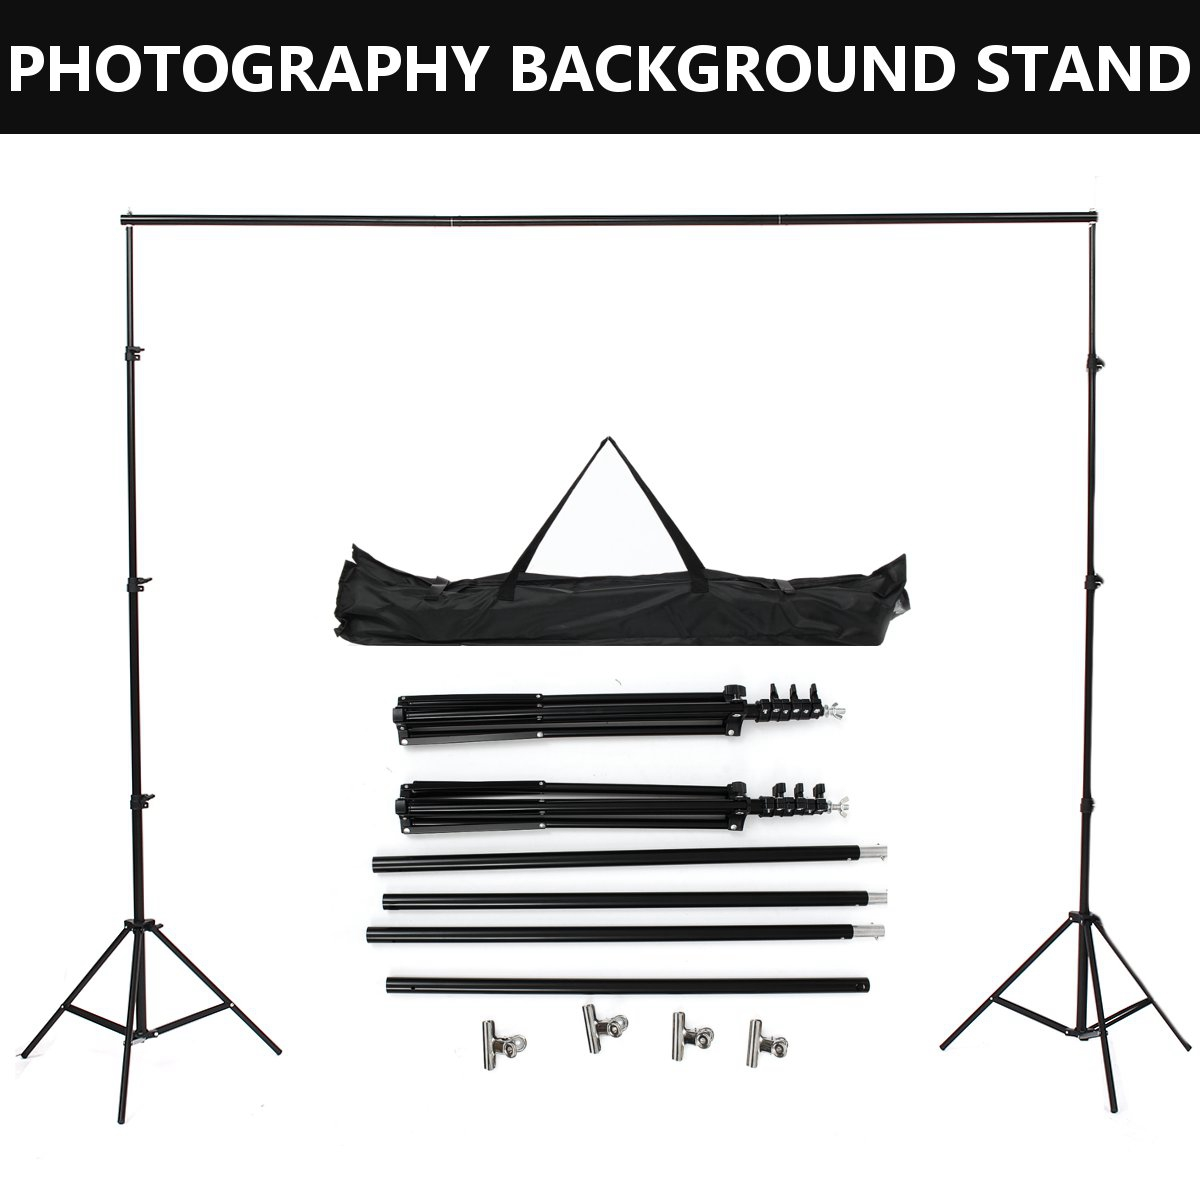 Color : Pink Background Video Stand Photo Studio Background Backdrop Stand Kit,Photography Support System,Product Photography and Video Shooting